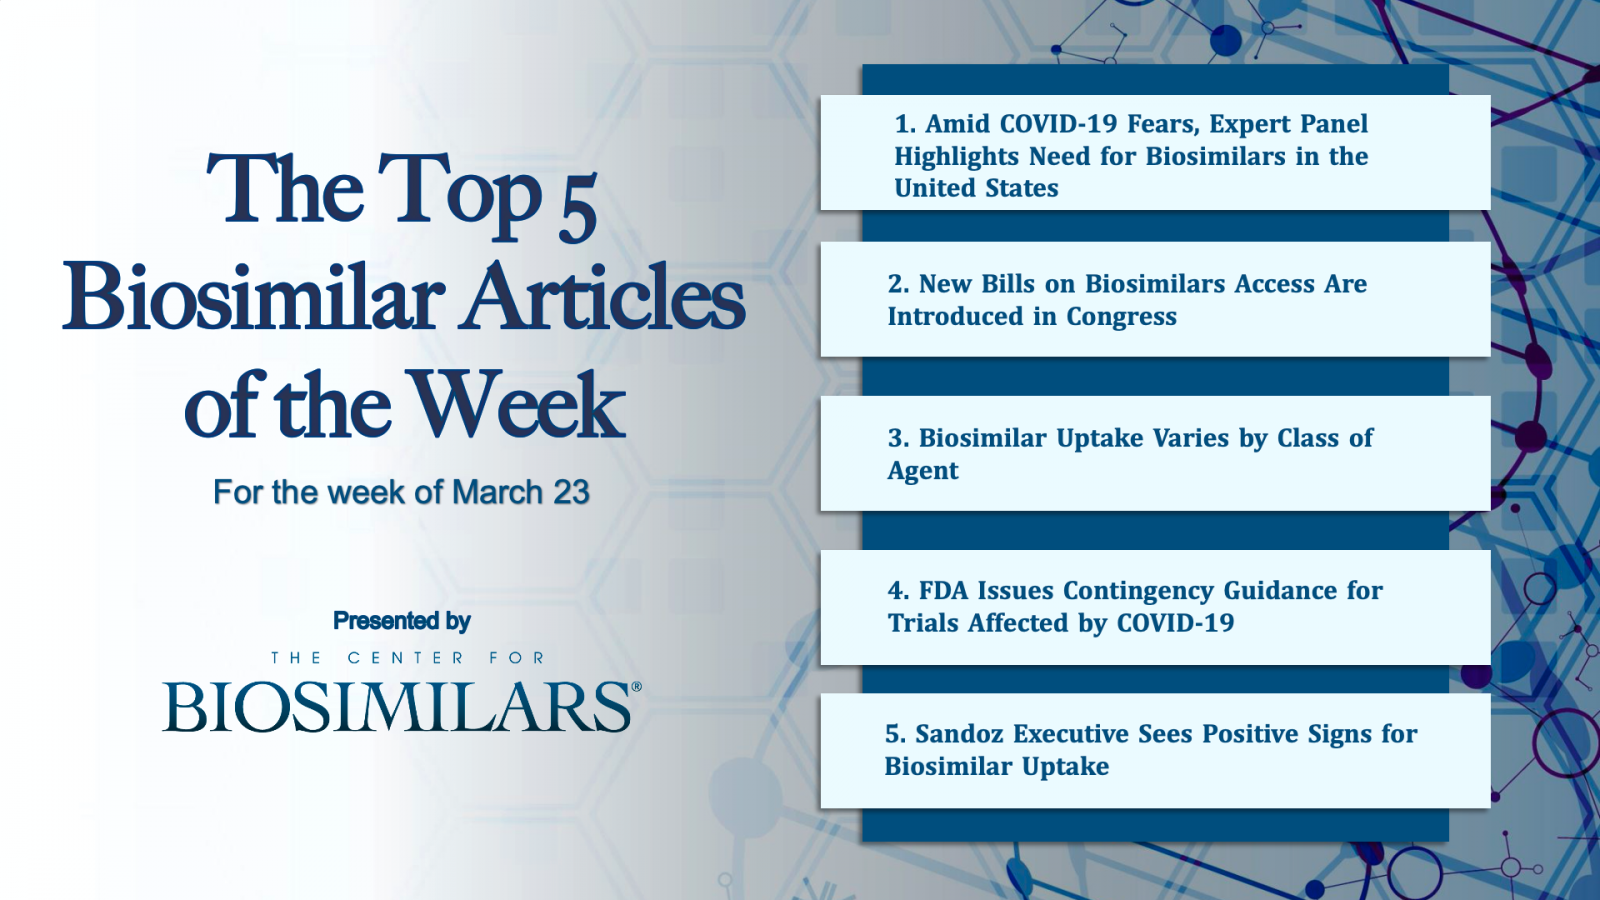 The Top 5 Biosimilars Articles for the Week of March 23